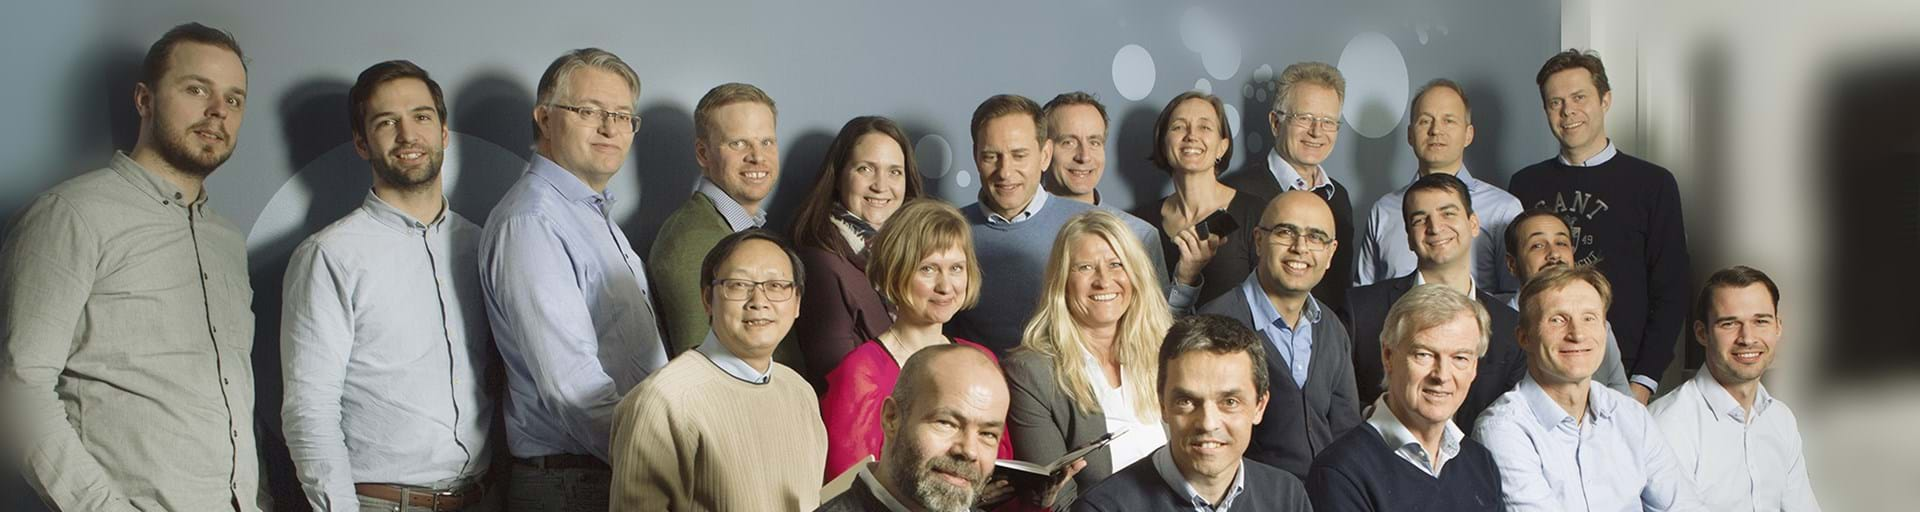 Team portrait of Cambi employees in Asker